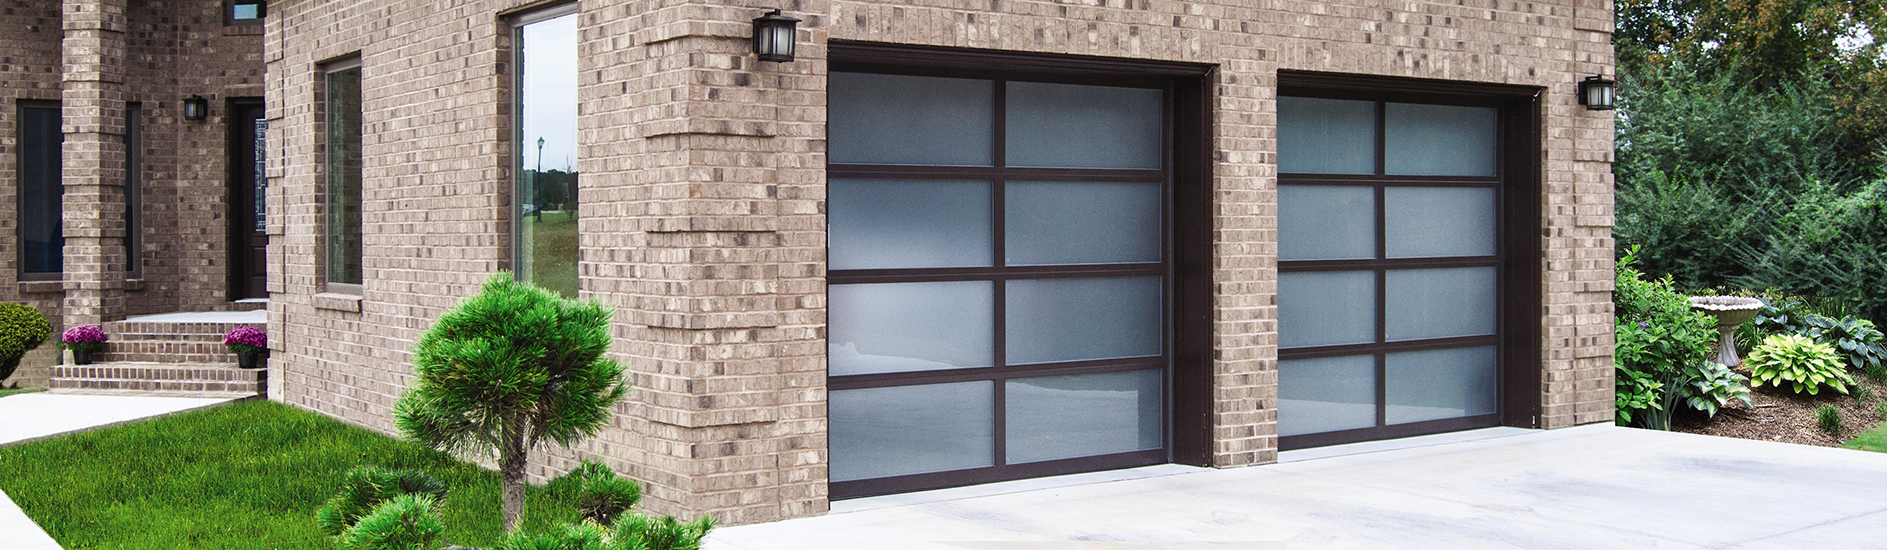 Mc Overhead Door Residential Commercial Garage Doors And Openers